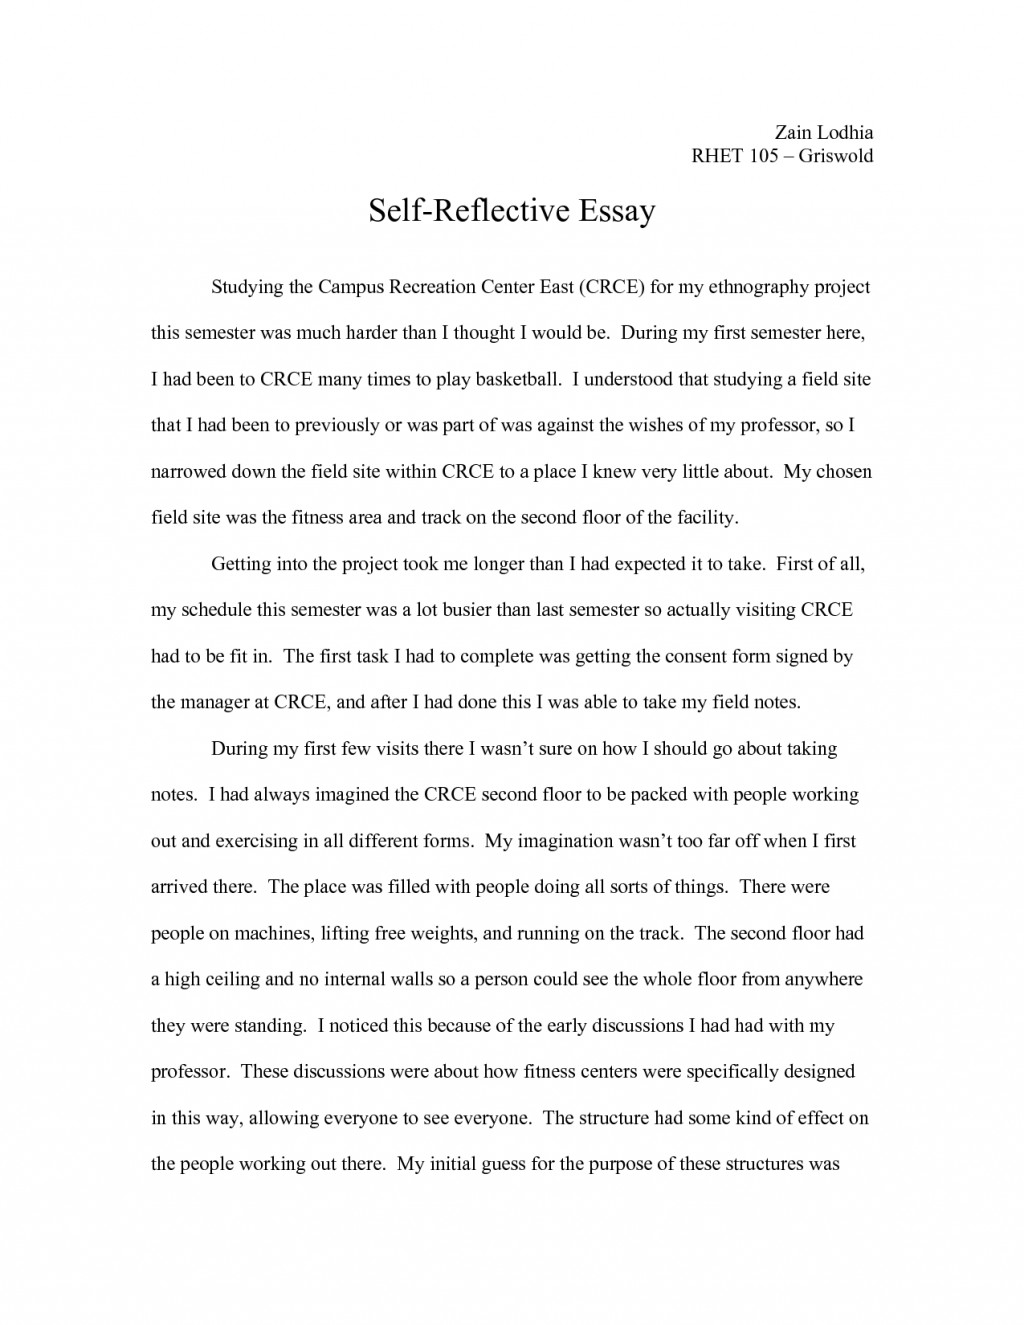 018 Essay Example Qal0pwnf46 How To Start An Unusual Conclusion A History Sentence For Write Expository Large